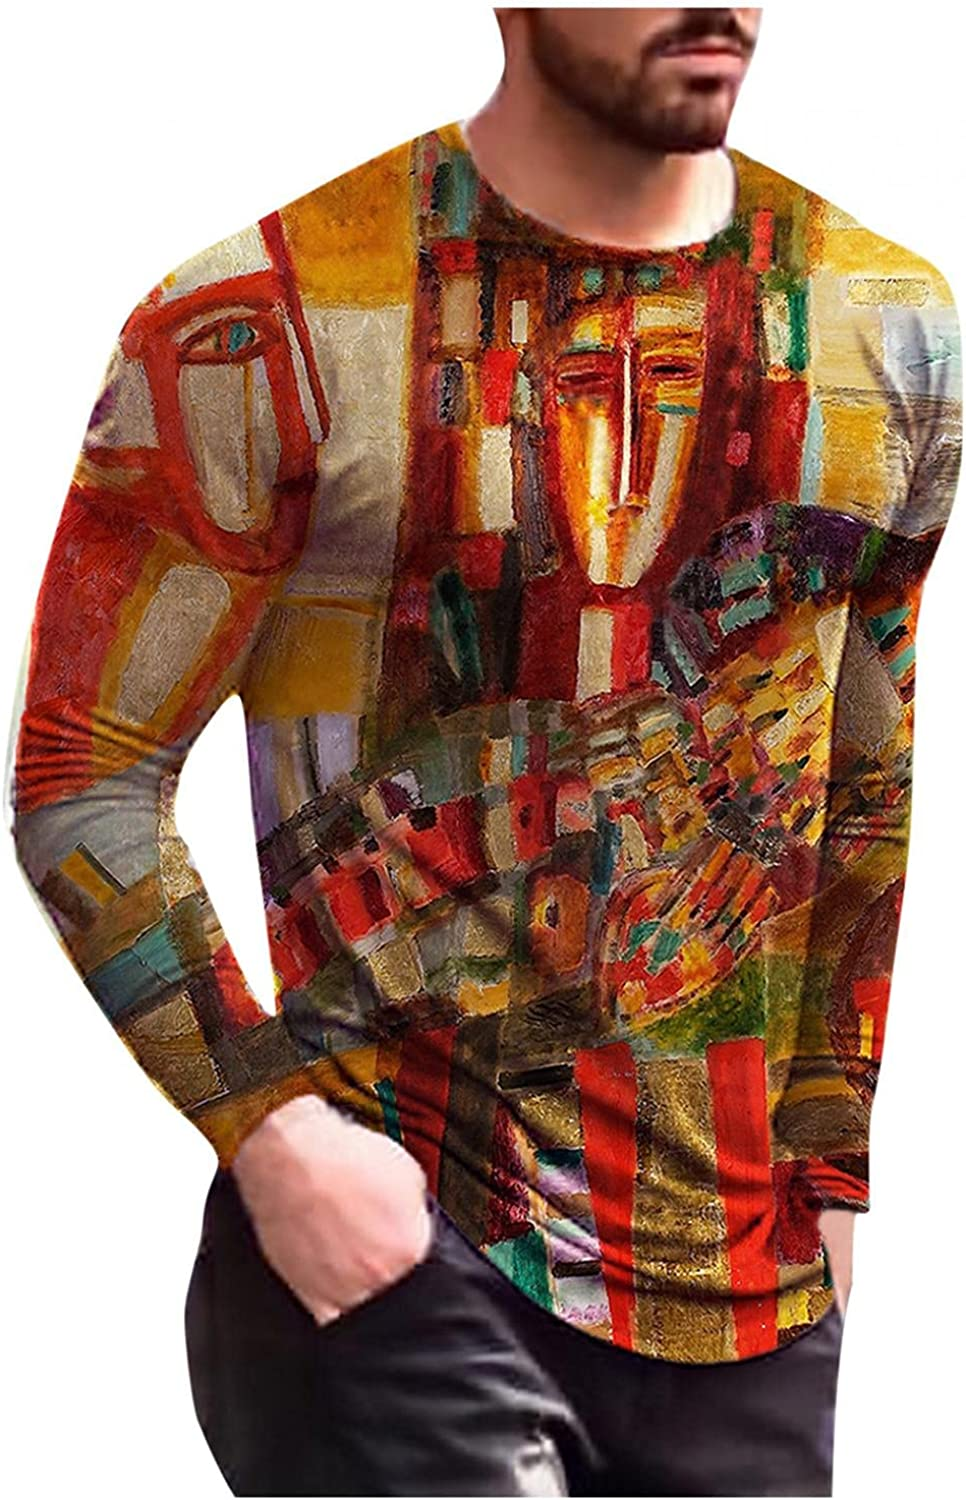 Aayomet Men's T-Shirts Abstract Graphic Long Sleeve Round Neck Sweatshirts Casual Workout Sport Tee Shirts Blouses Tops